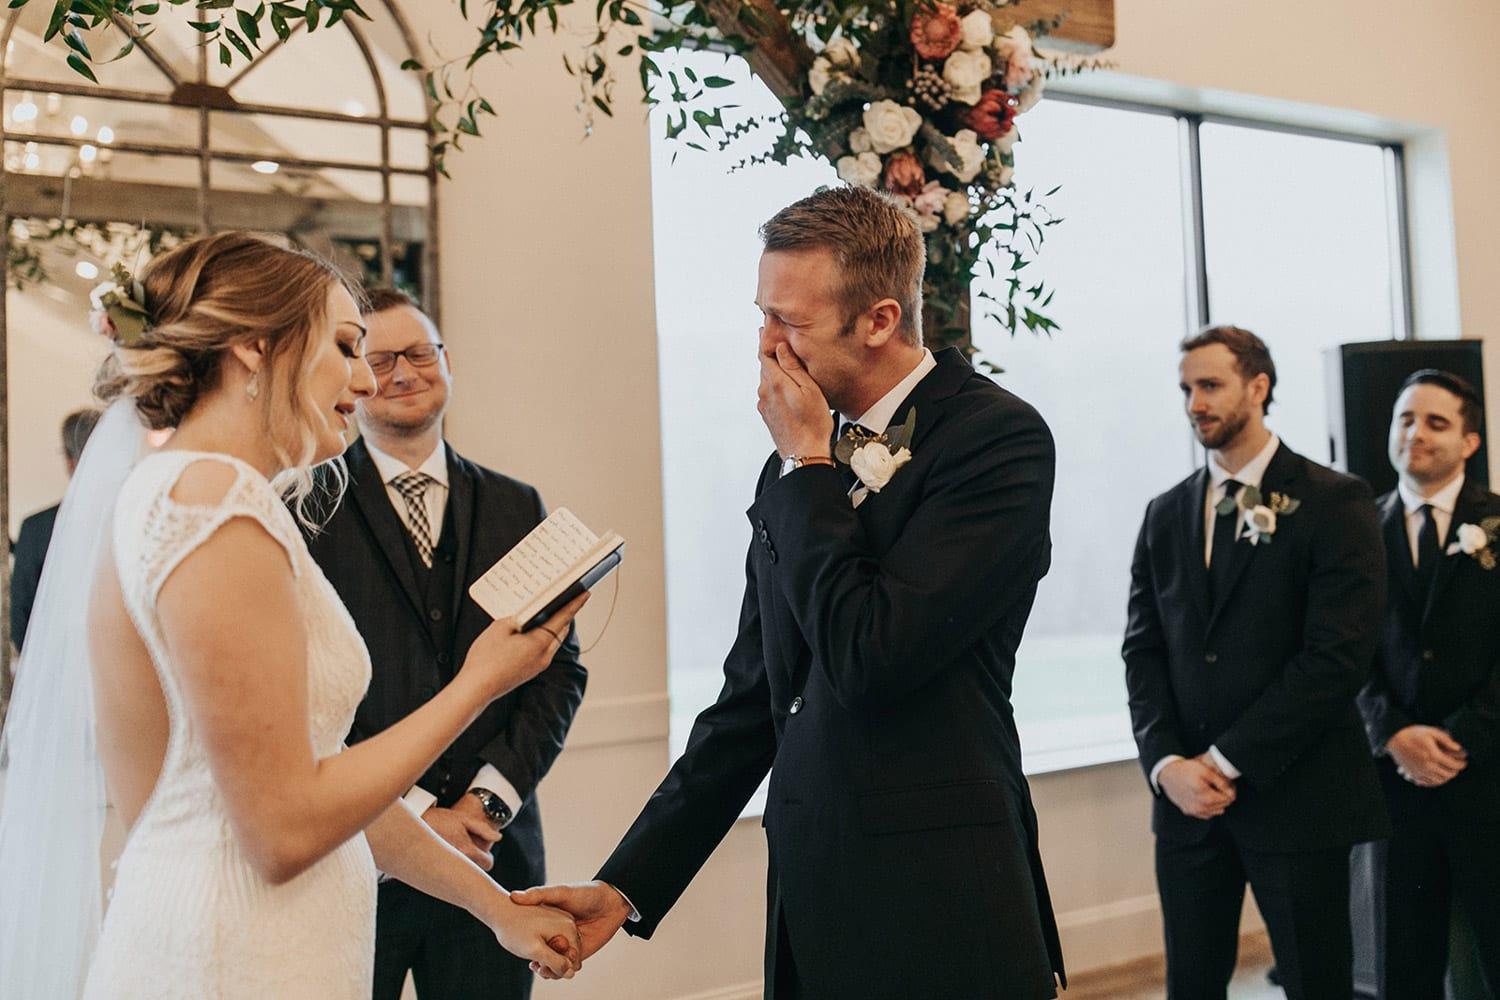 Groom tears up during ceremony as bride reads love letter